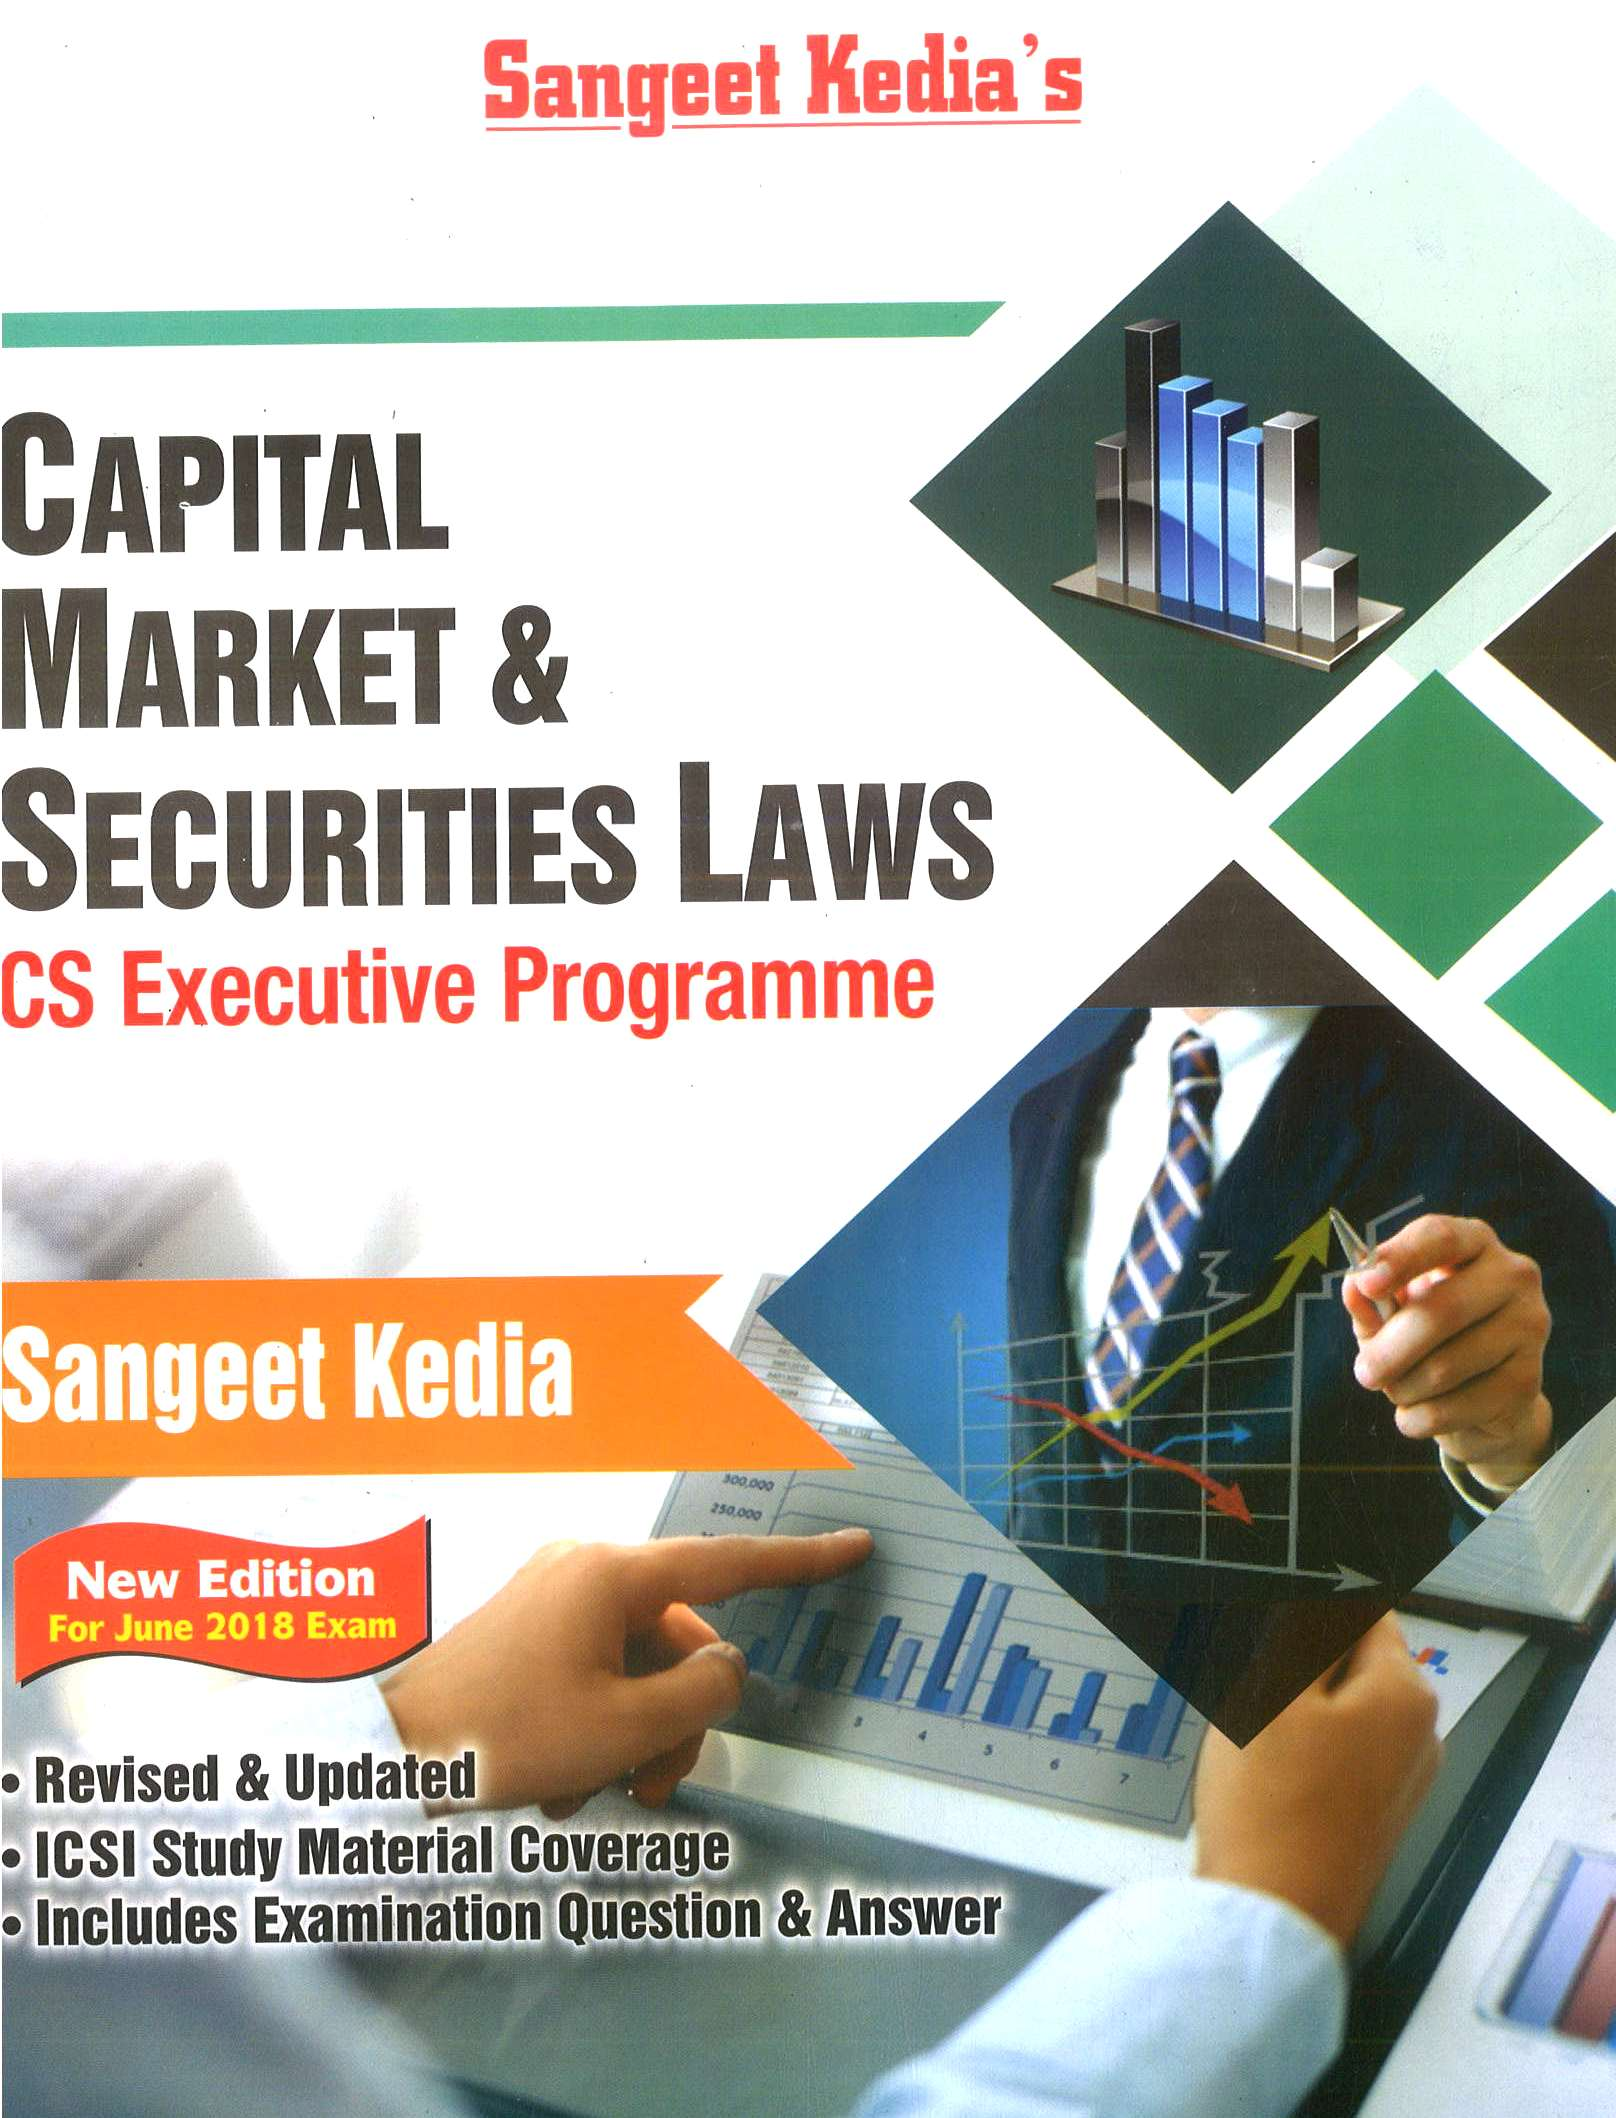 Pooja Law House For CS Executive Capital Market And Securities Laws (New Syllabus) By Sangeet Kedia Applicable for June 2018 Exam (Pooja Law House Publishing) Edition 20th, June 2018